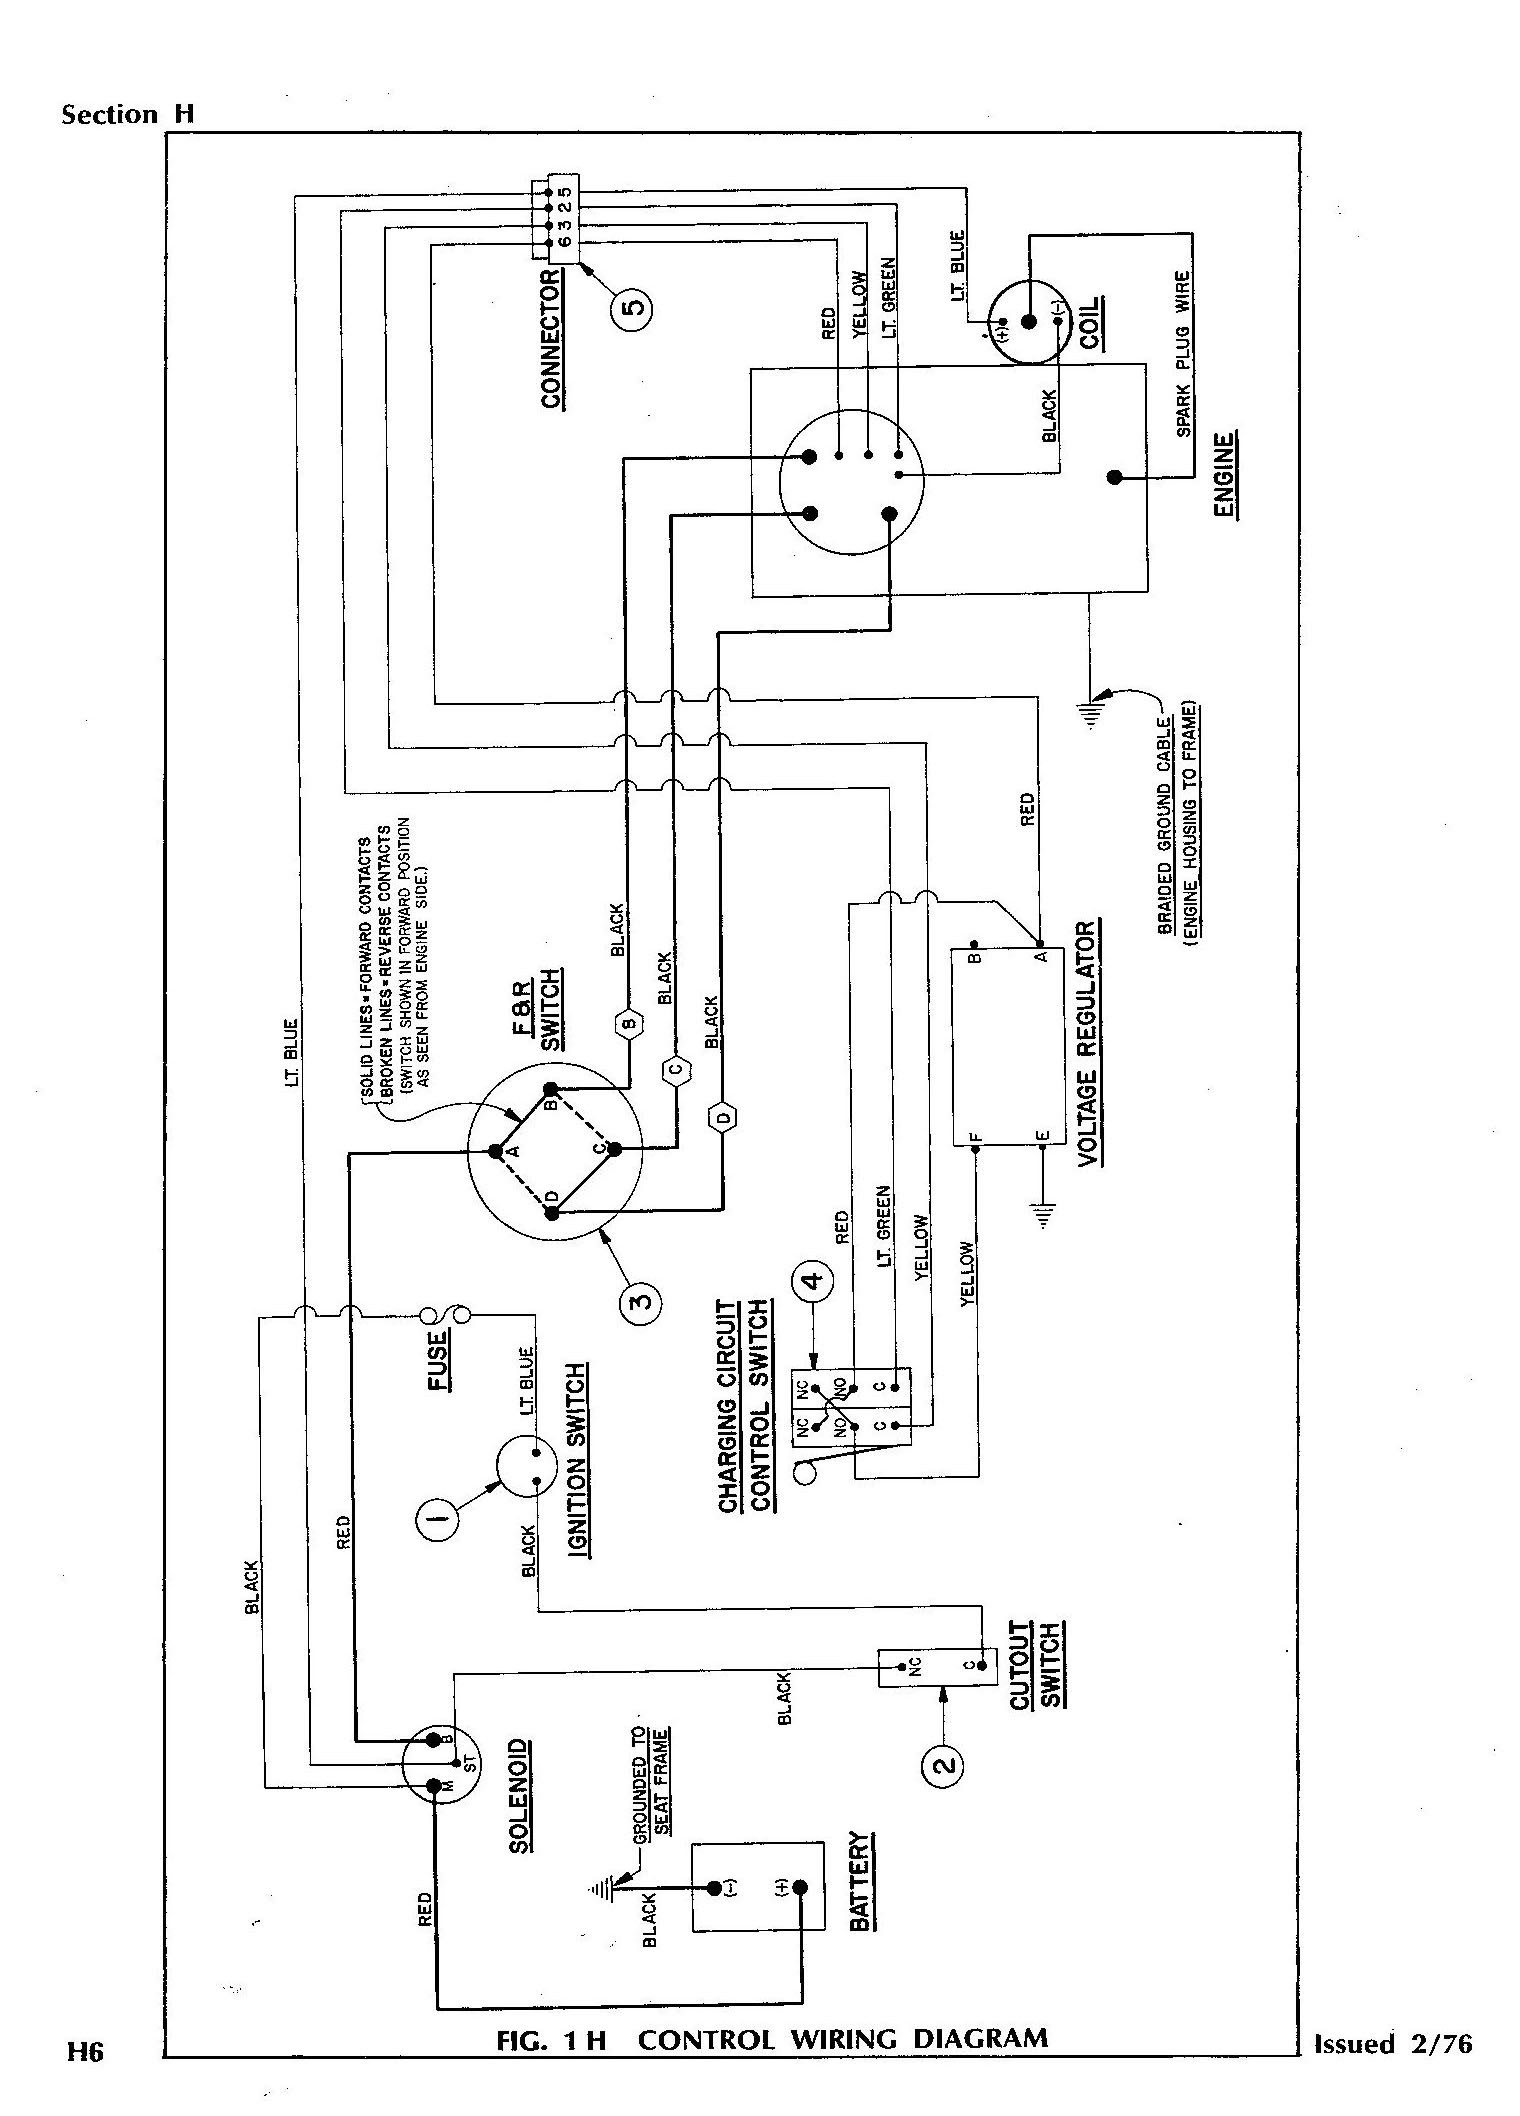 kawasaki voltage regulator wiring diagram 89286 ezgo voltage regulator wiring diagram wiring resources  89286 ezgo voltage regulator wiring